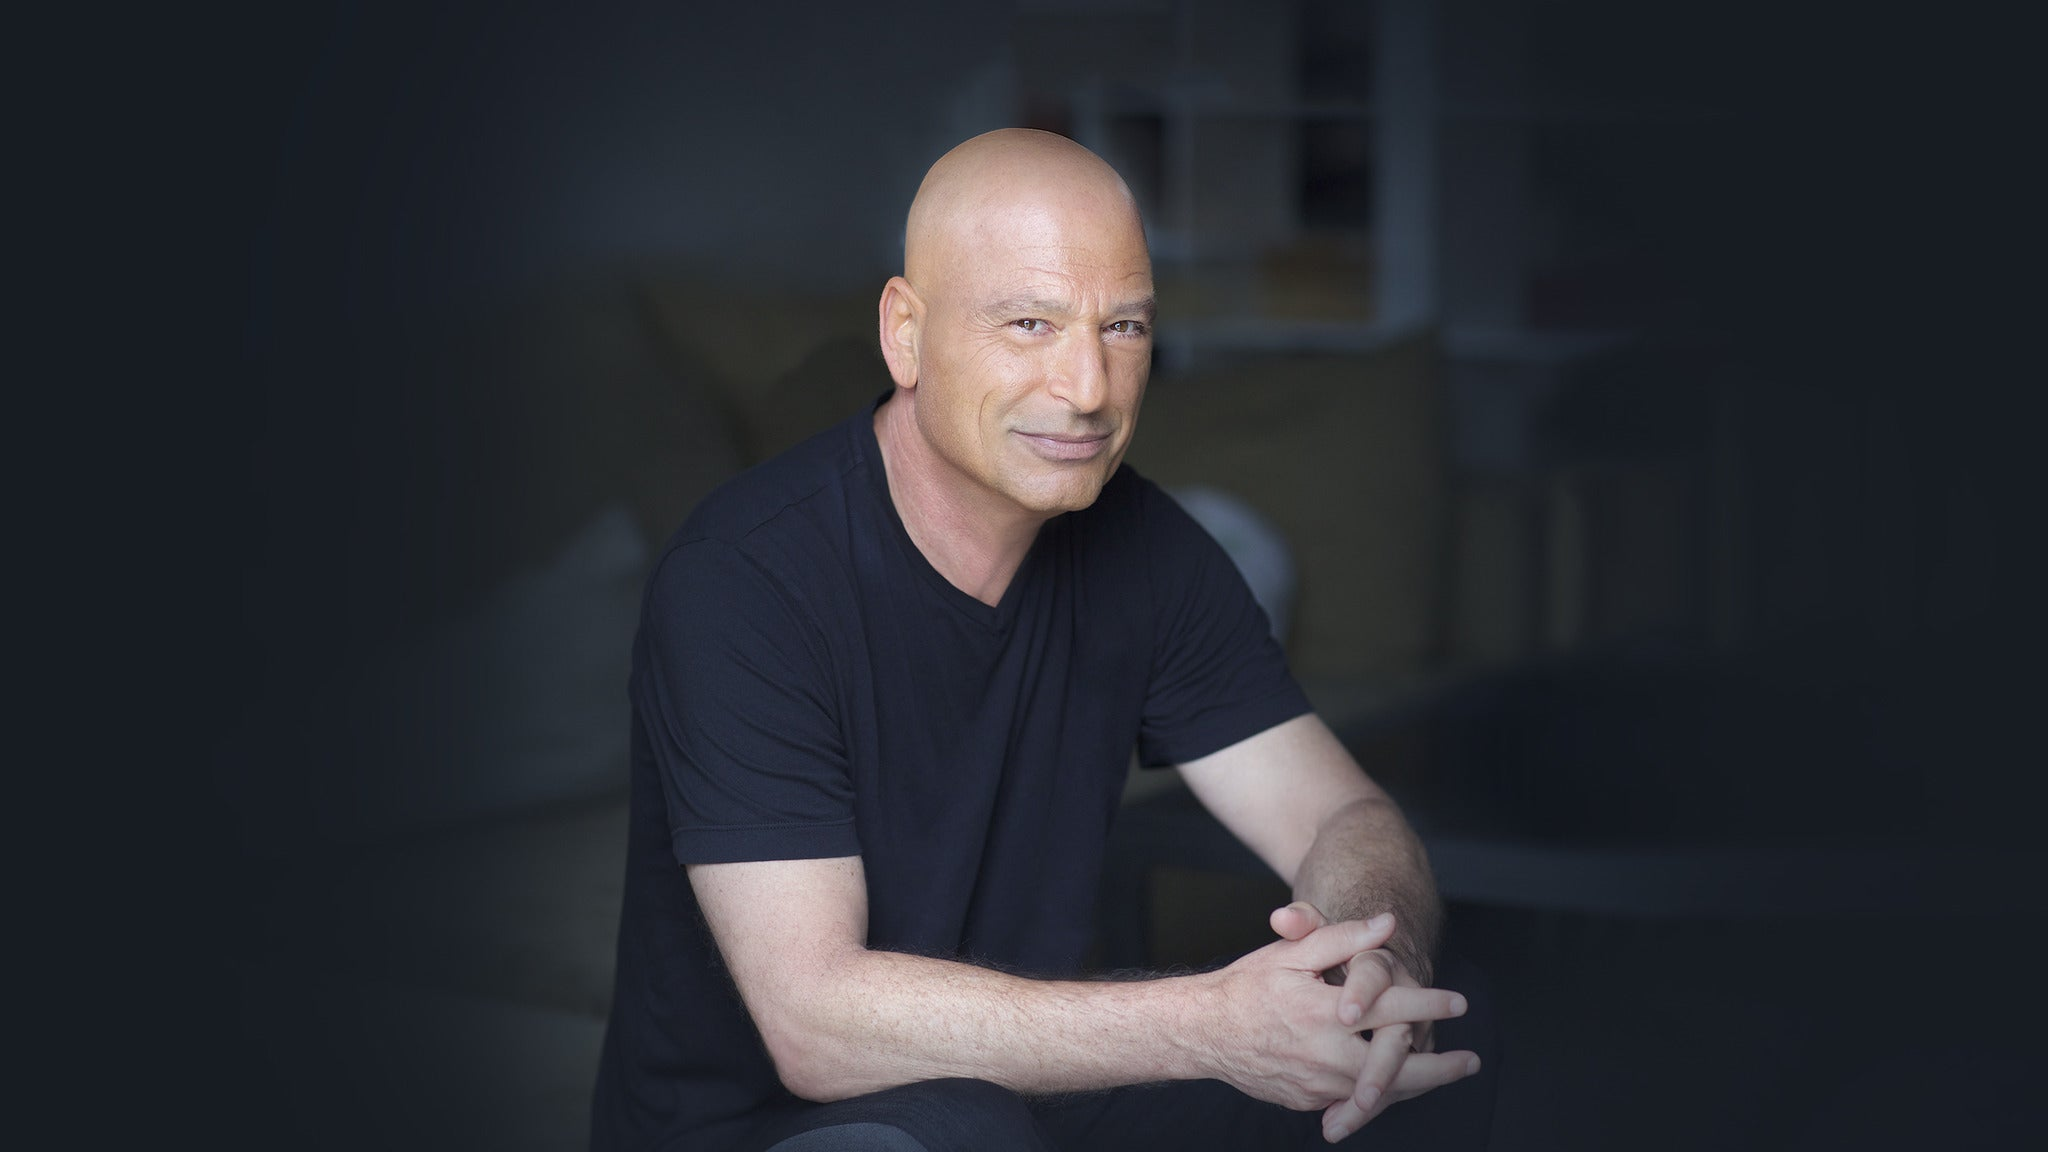 Howie Mandel at Community Theatre-NJ